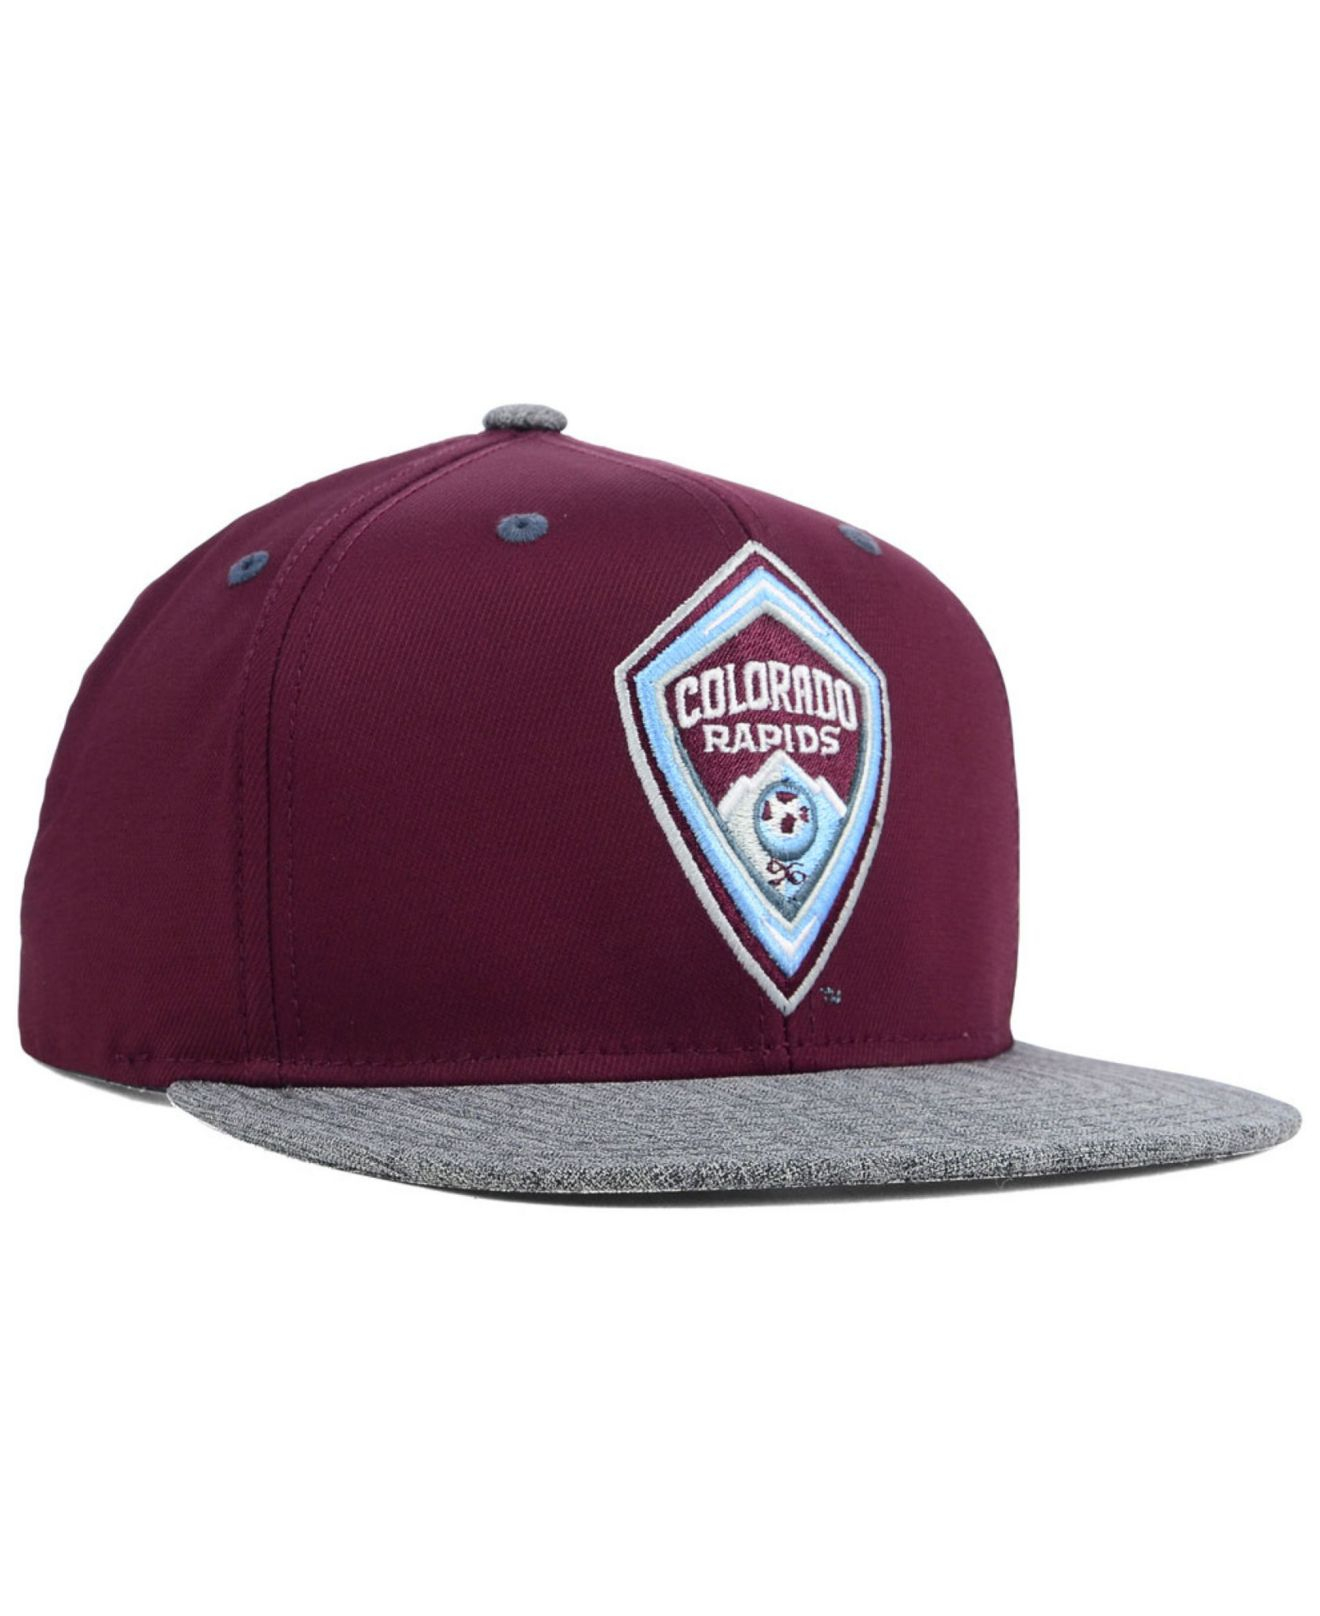 sneakers for cheap 85c72 aefac ... real lyst adidas colorado rapids team snapback cap in purple for men  d5cab 4c4cc